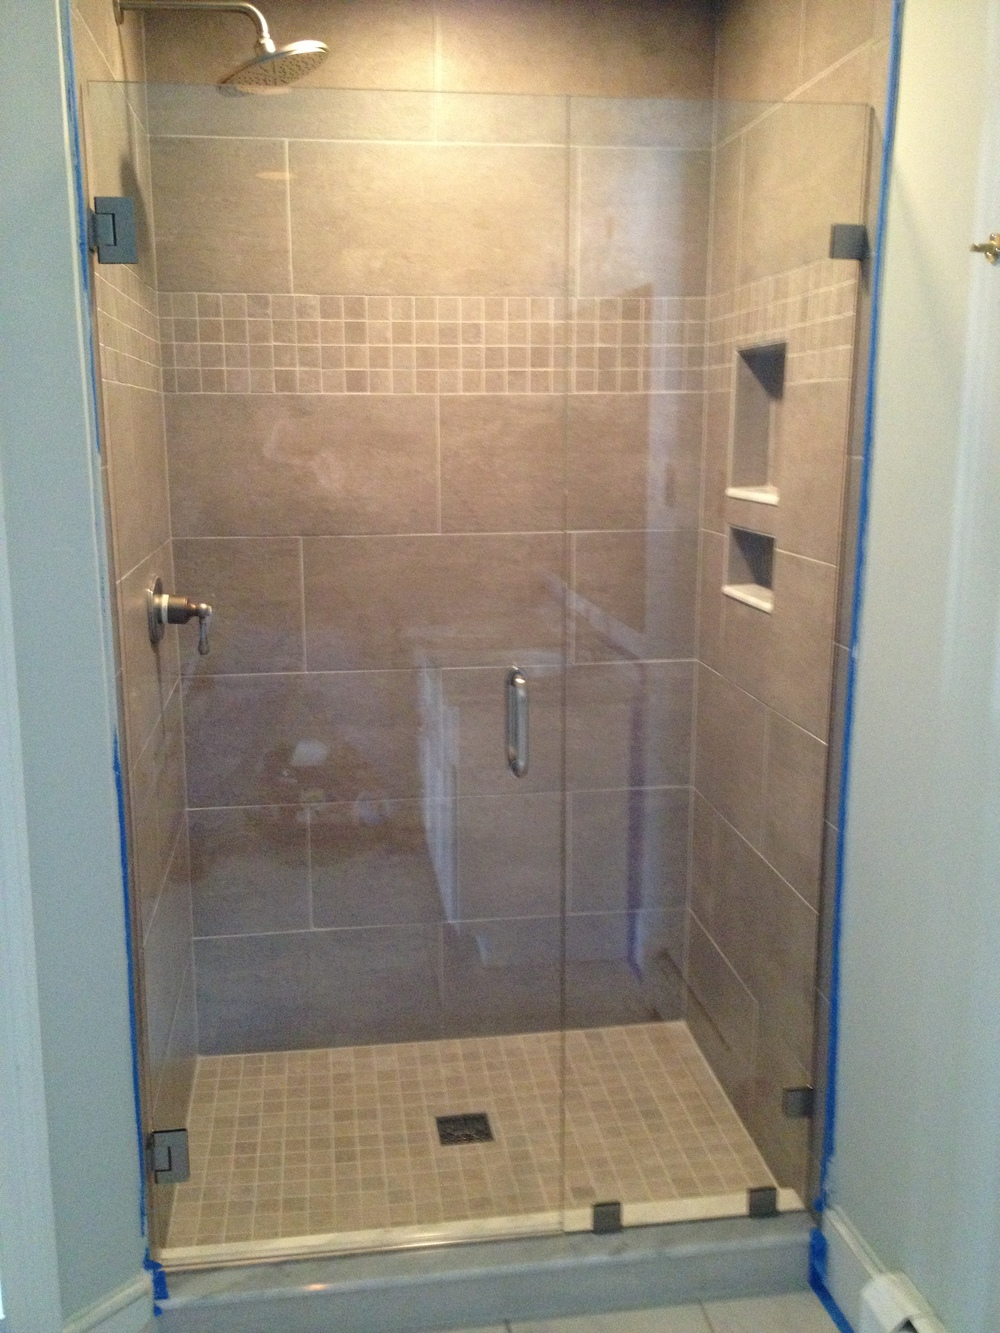 Bathroom shower doors frameless - Img_0955 Jpg